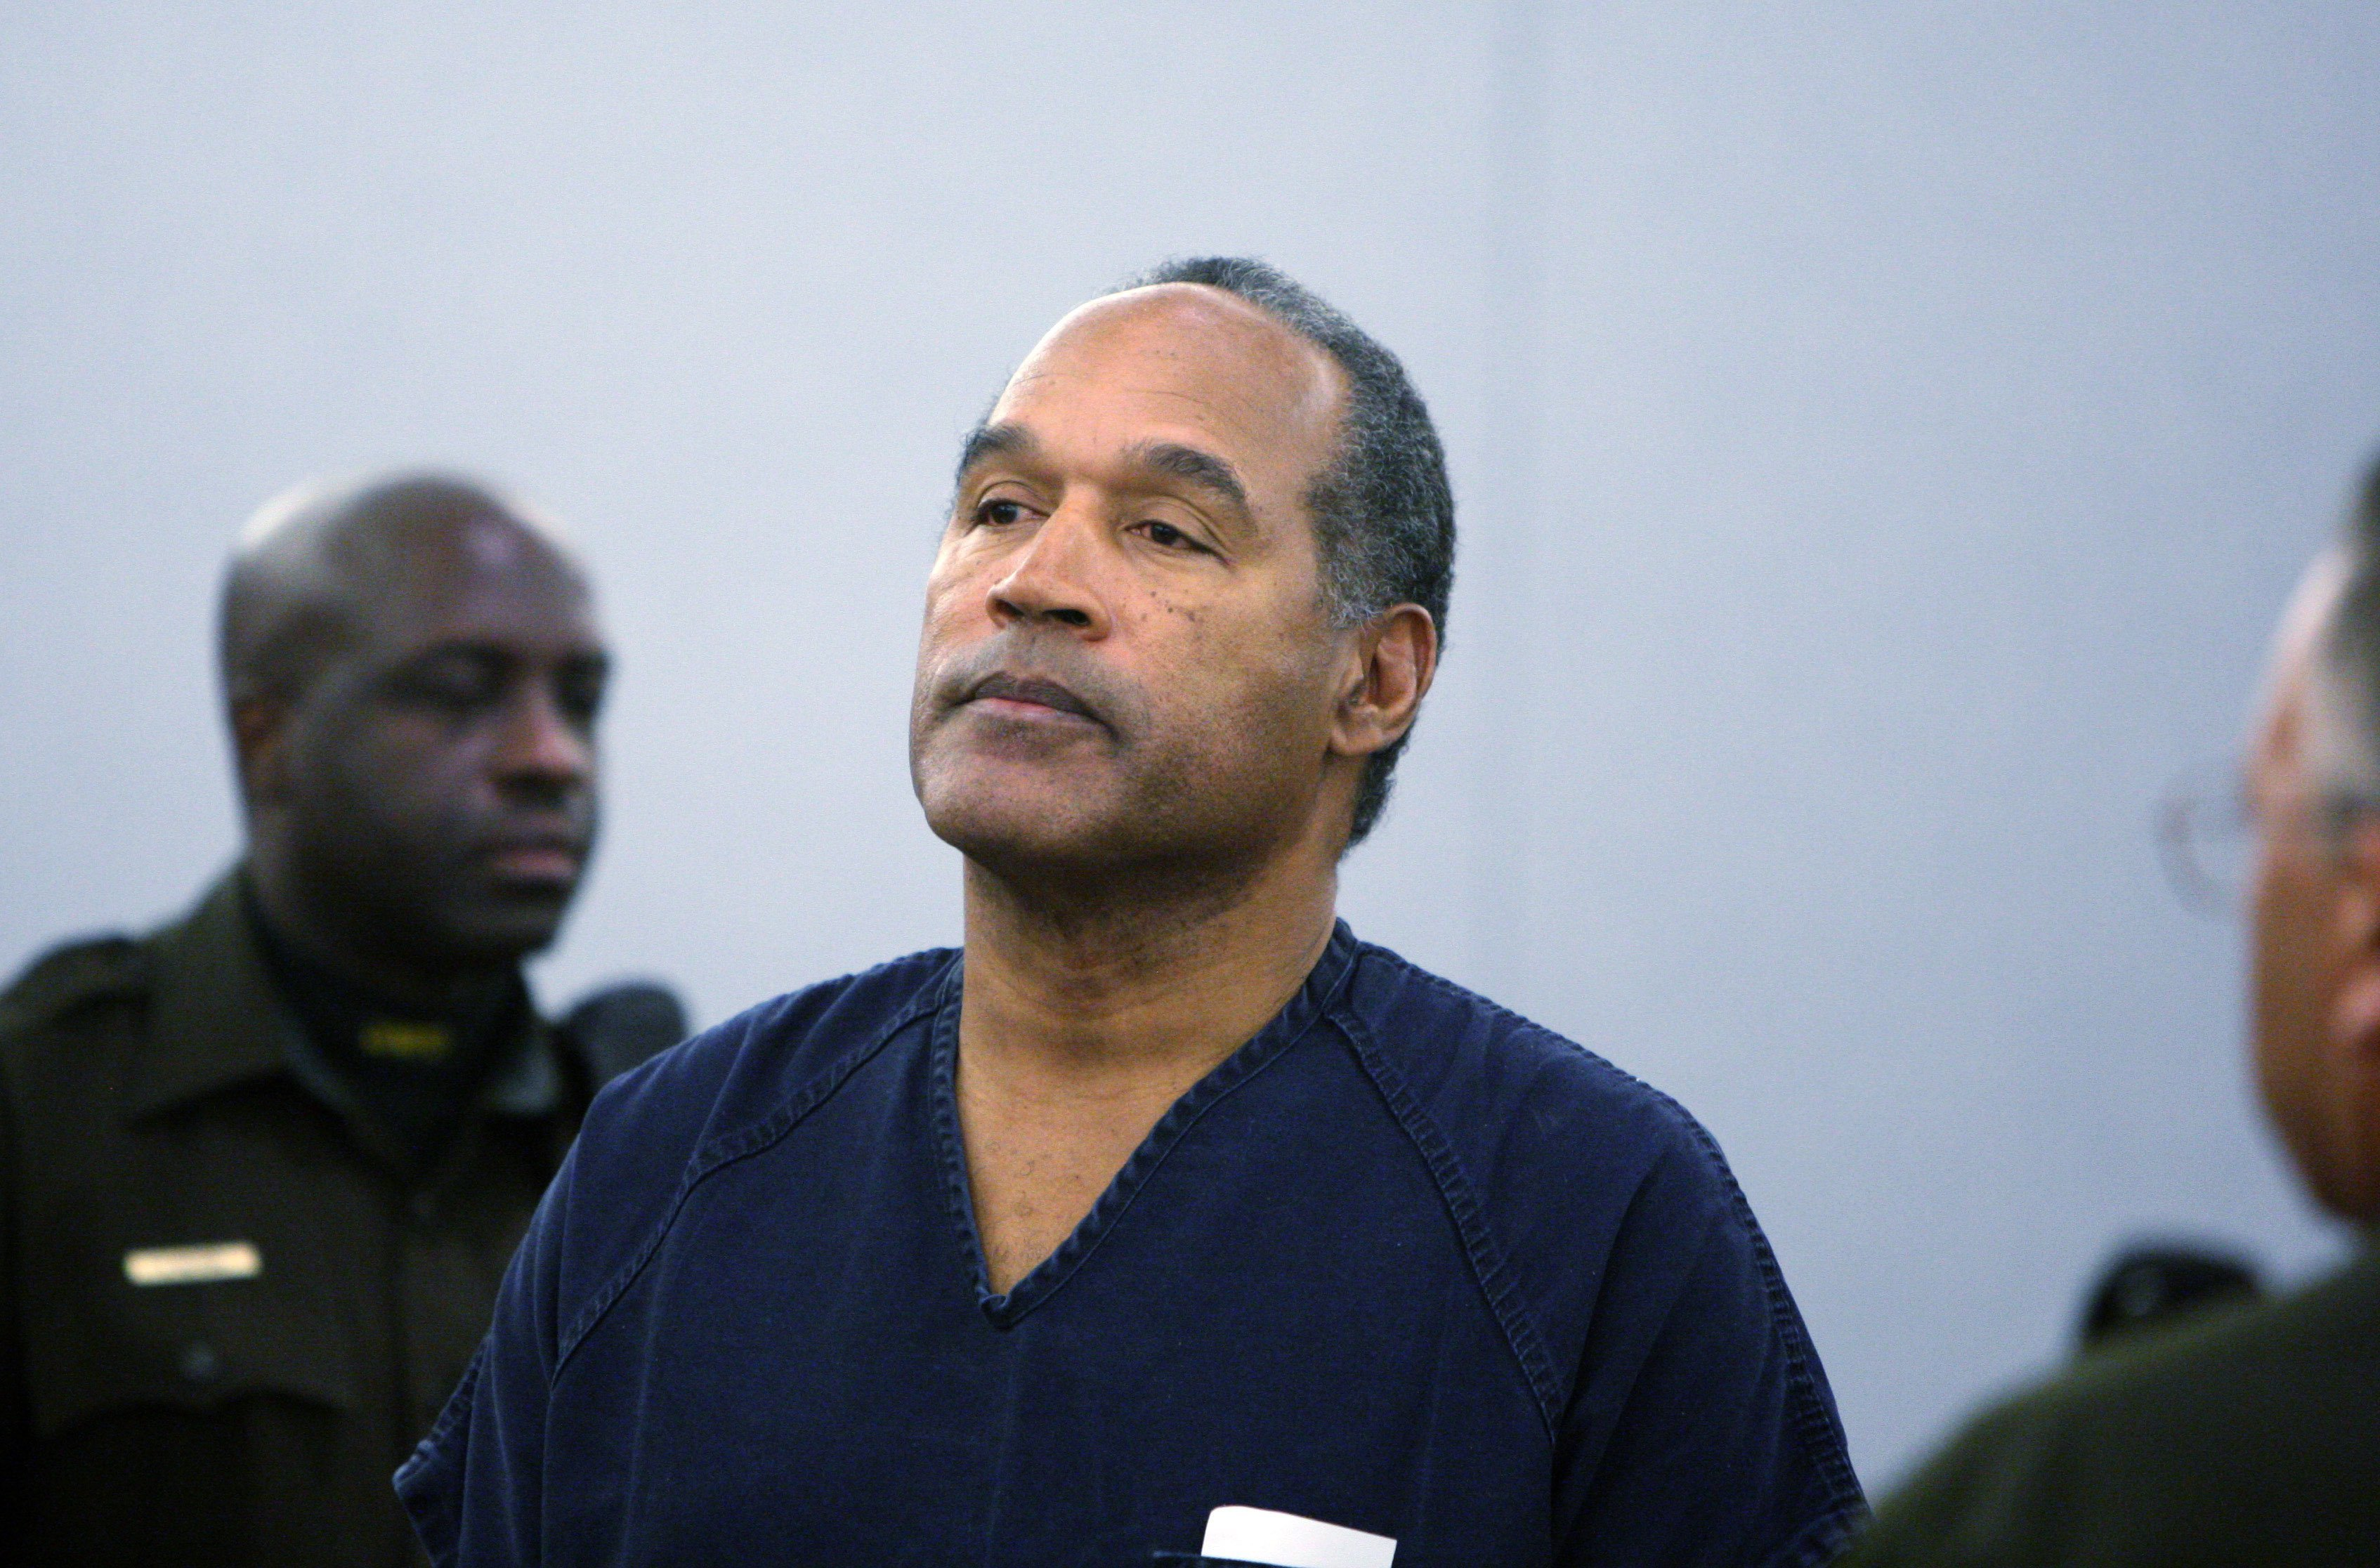 Even OJ Simpson Shreds Kaepernick for National Anthem Protests Bad Choice Attacking the Flag